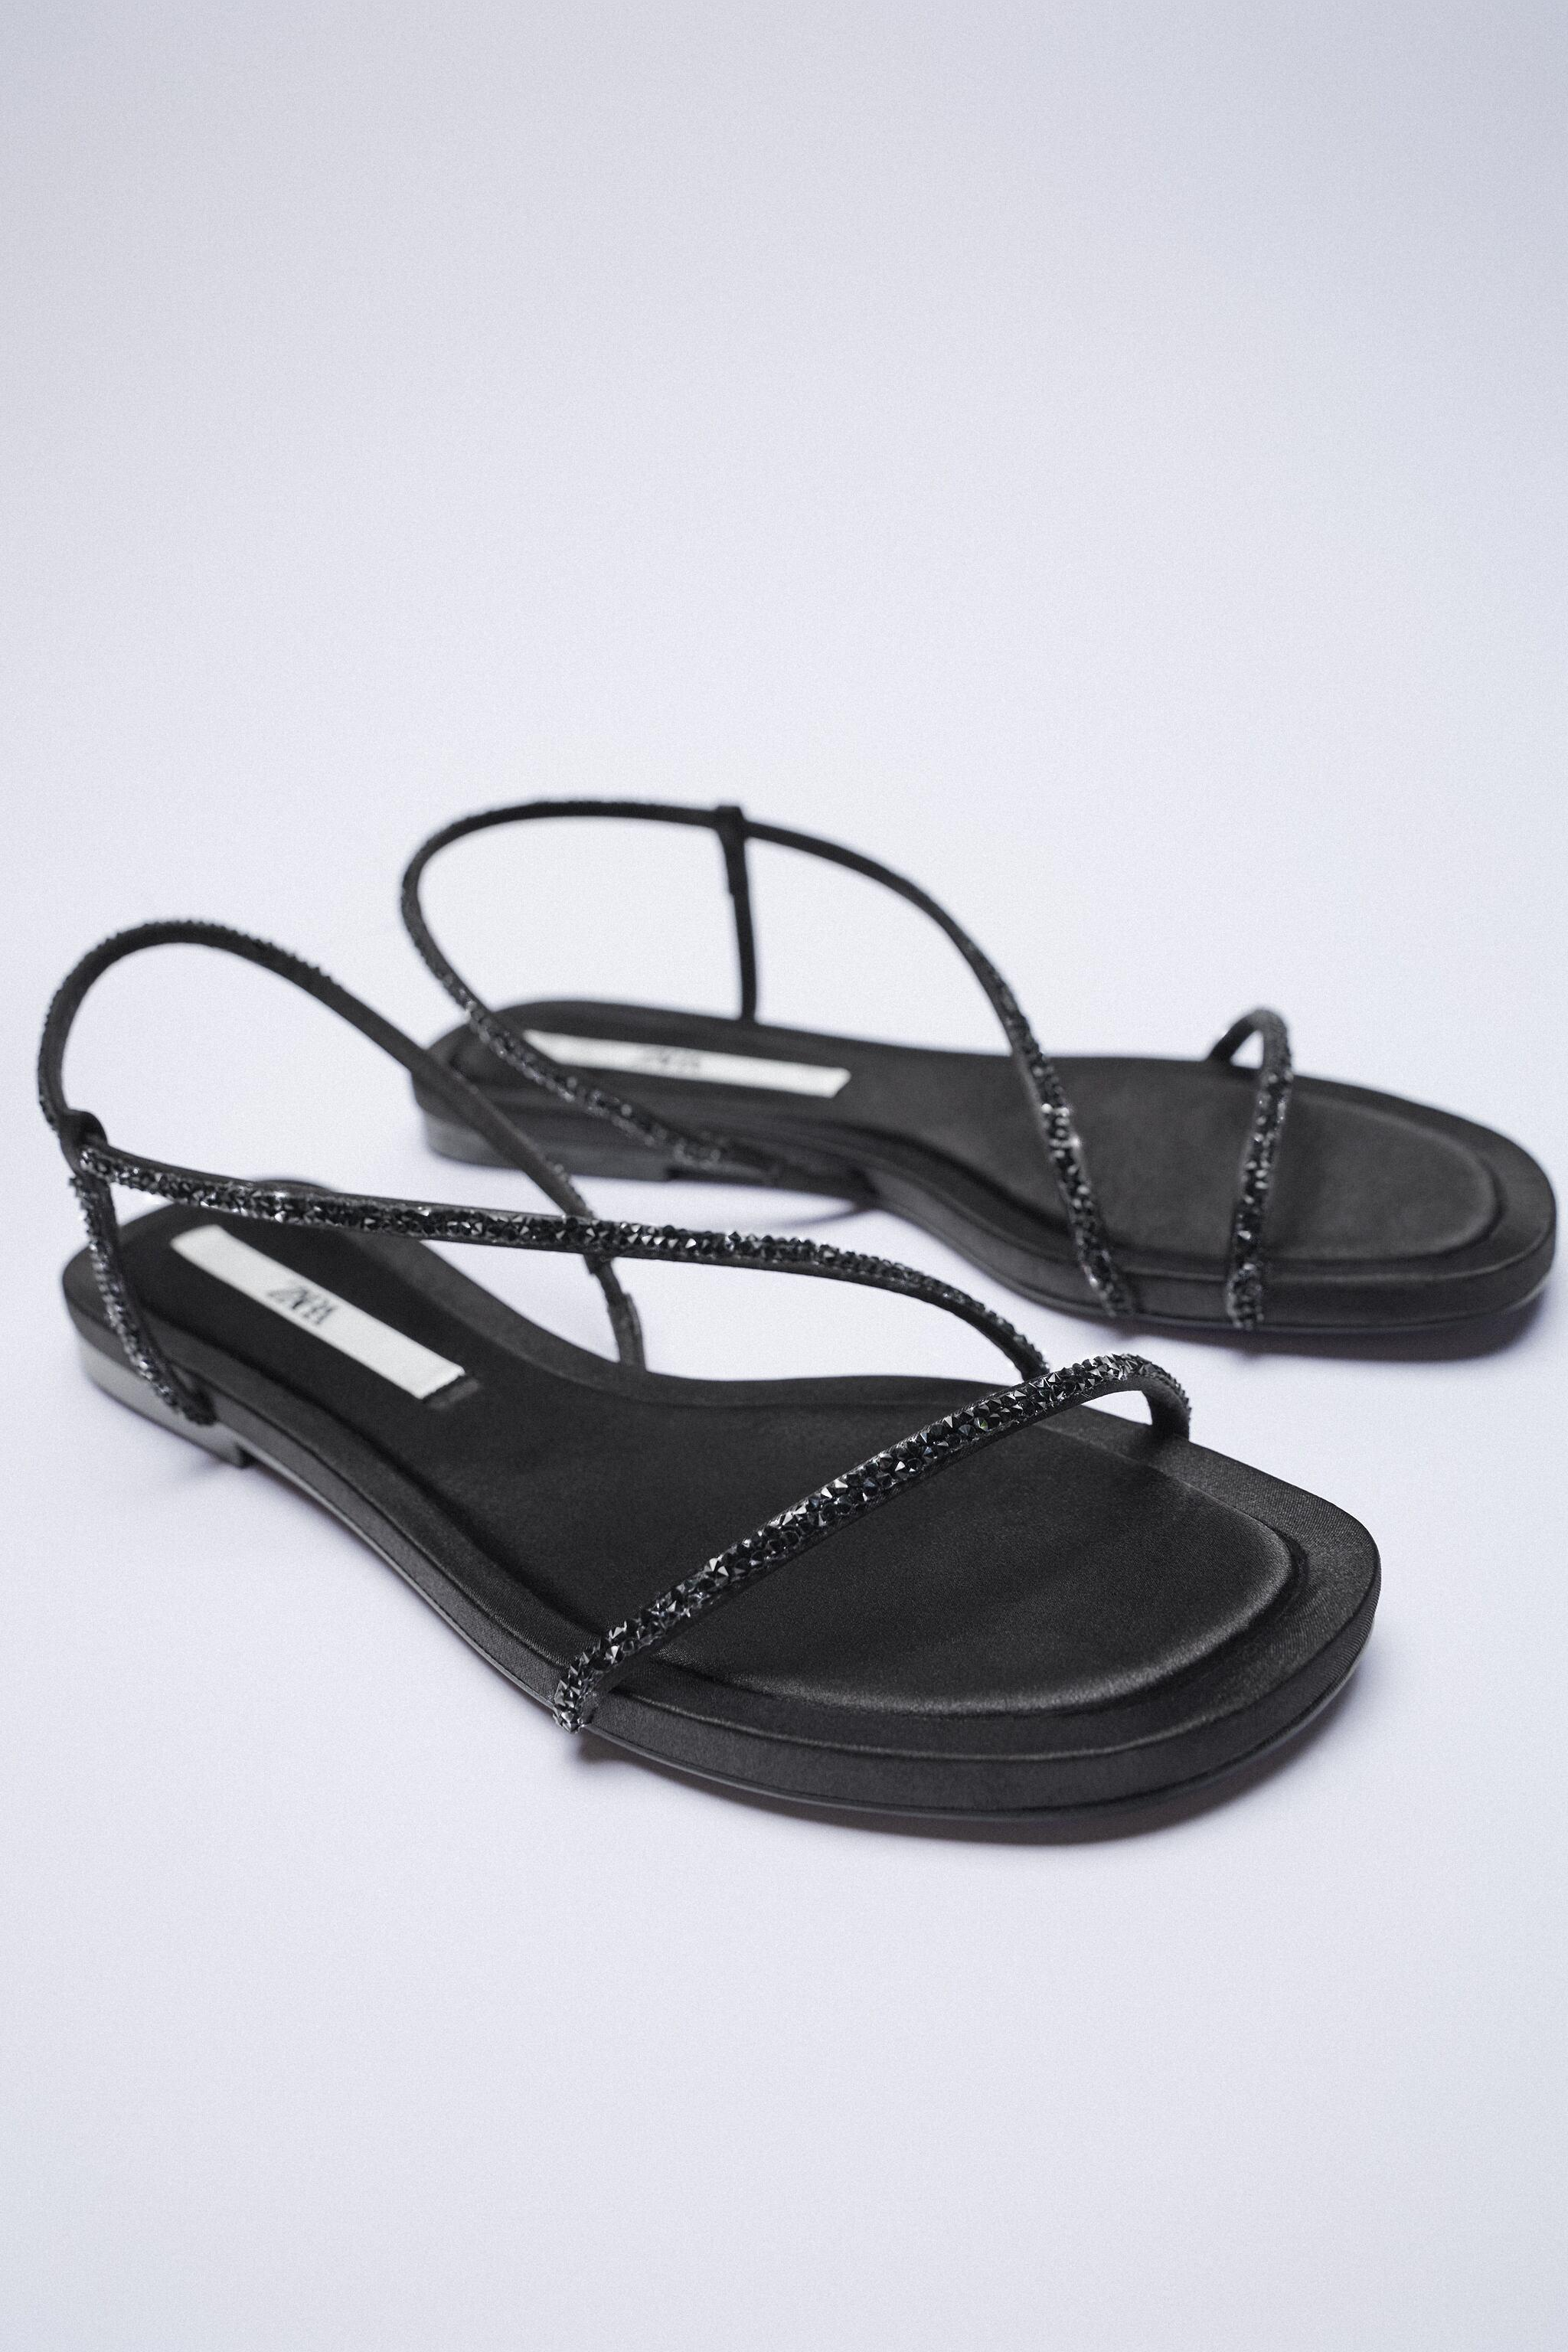 SPARKLY LOW HEELED SANDALS 5